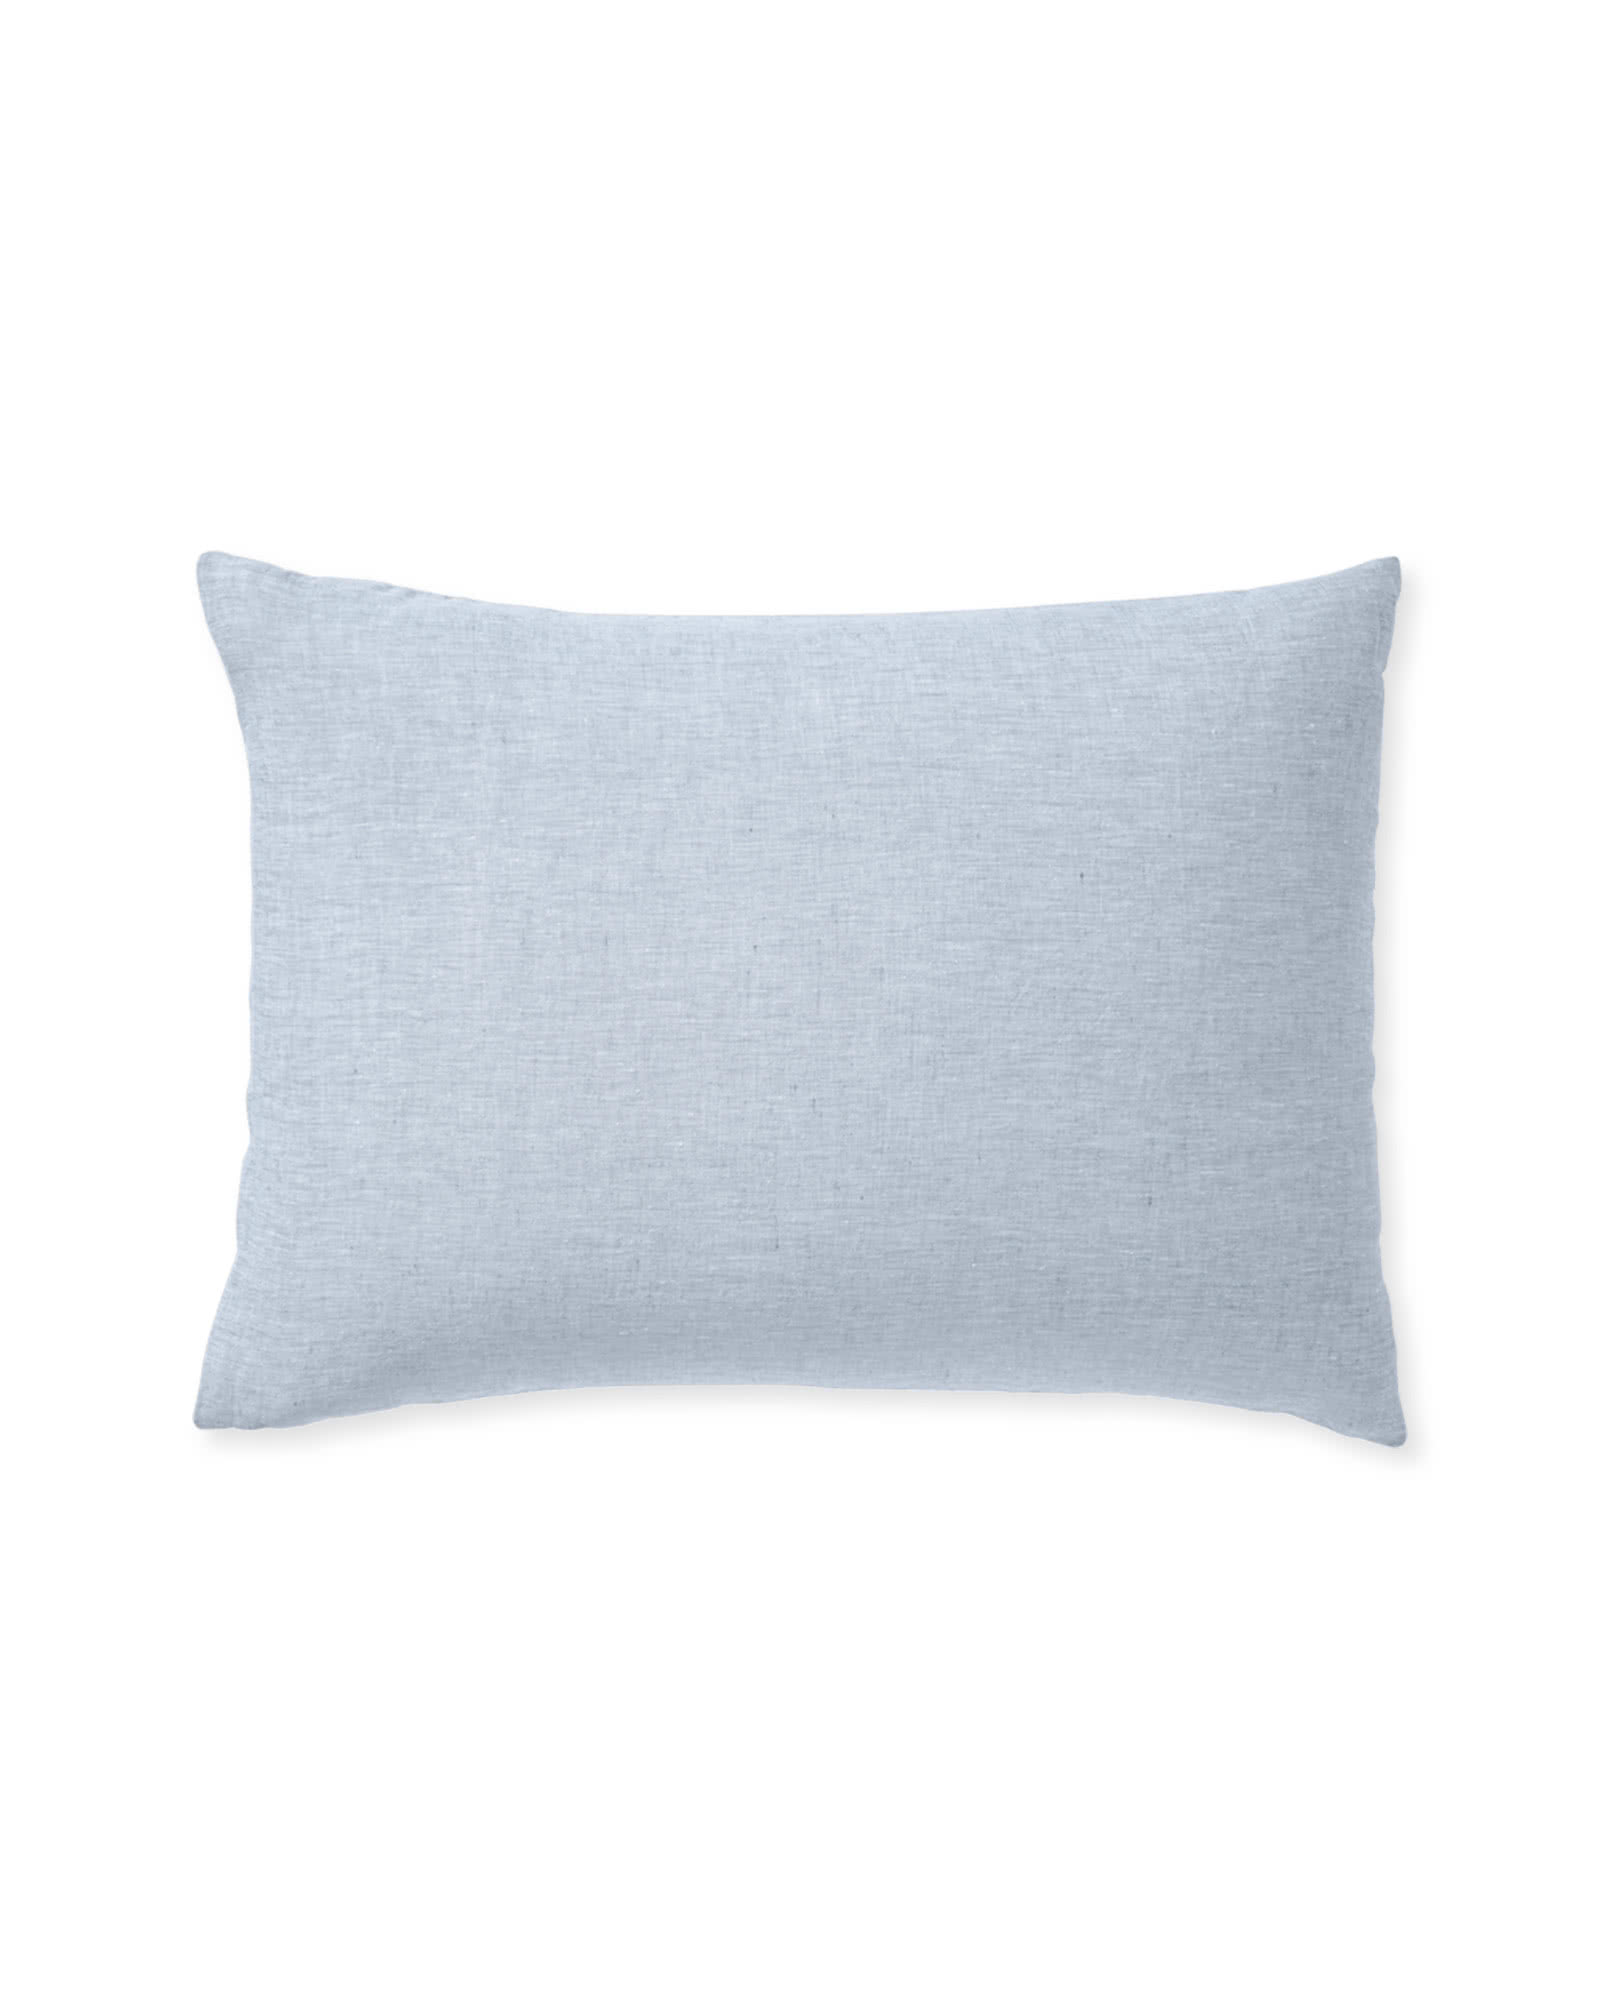 Cavallo Pillowcases (Extra Set of 2), Blue Chambray